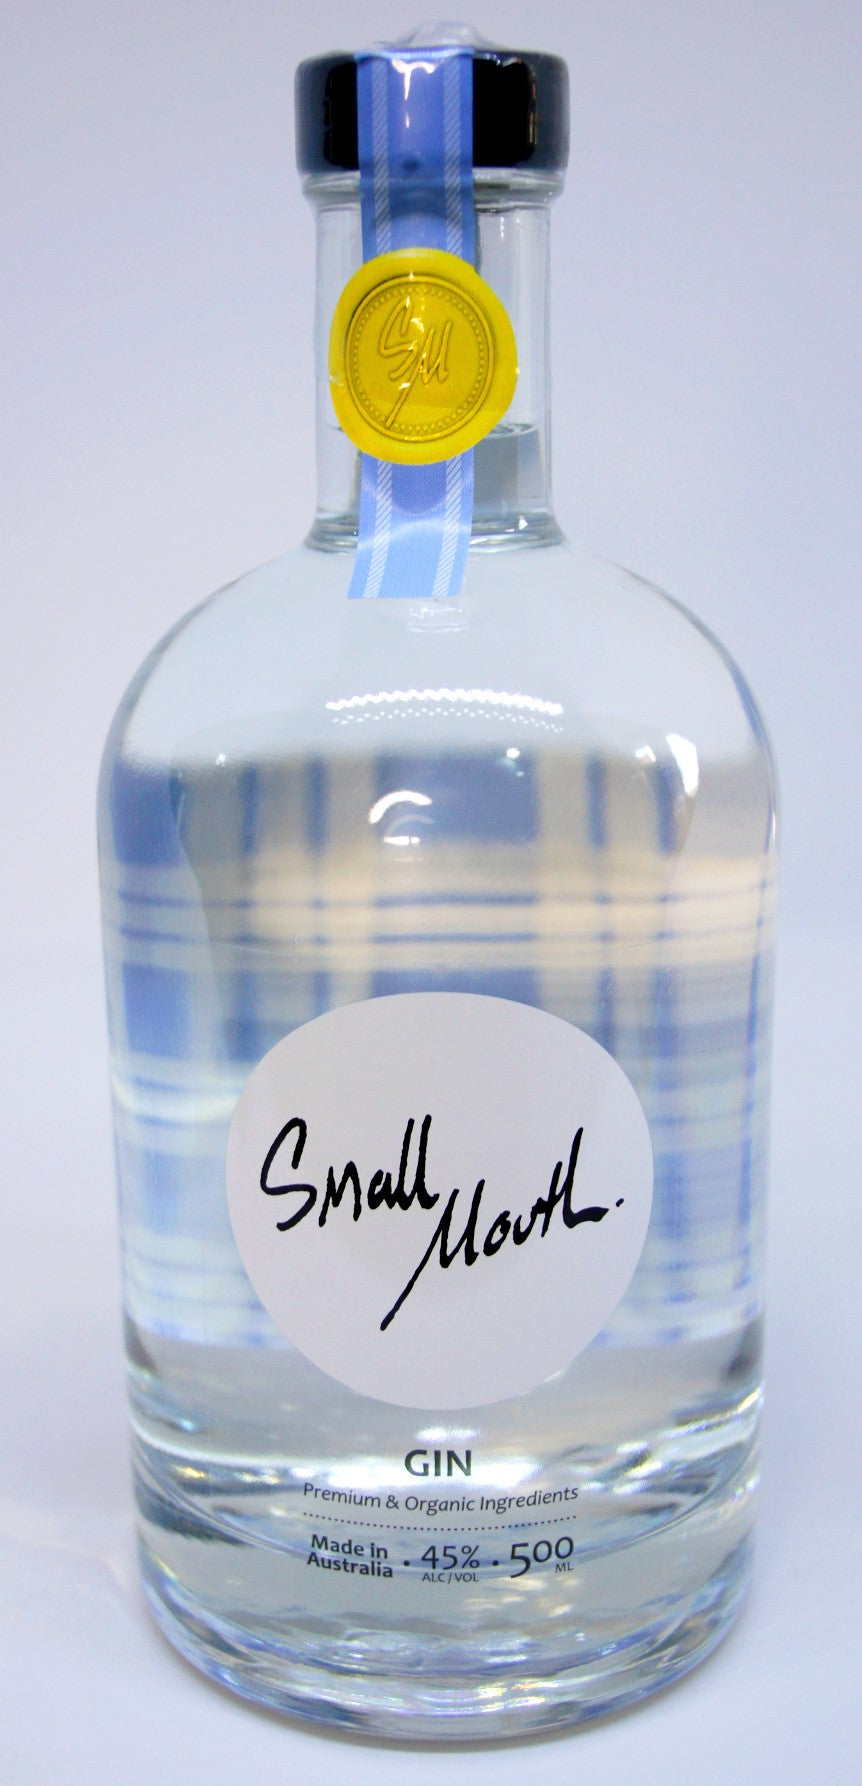 Small Mouth Gin